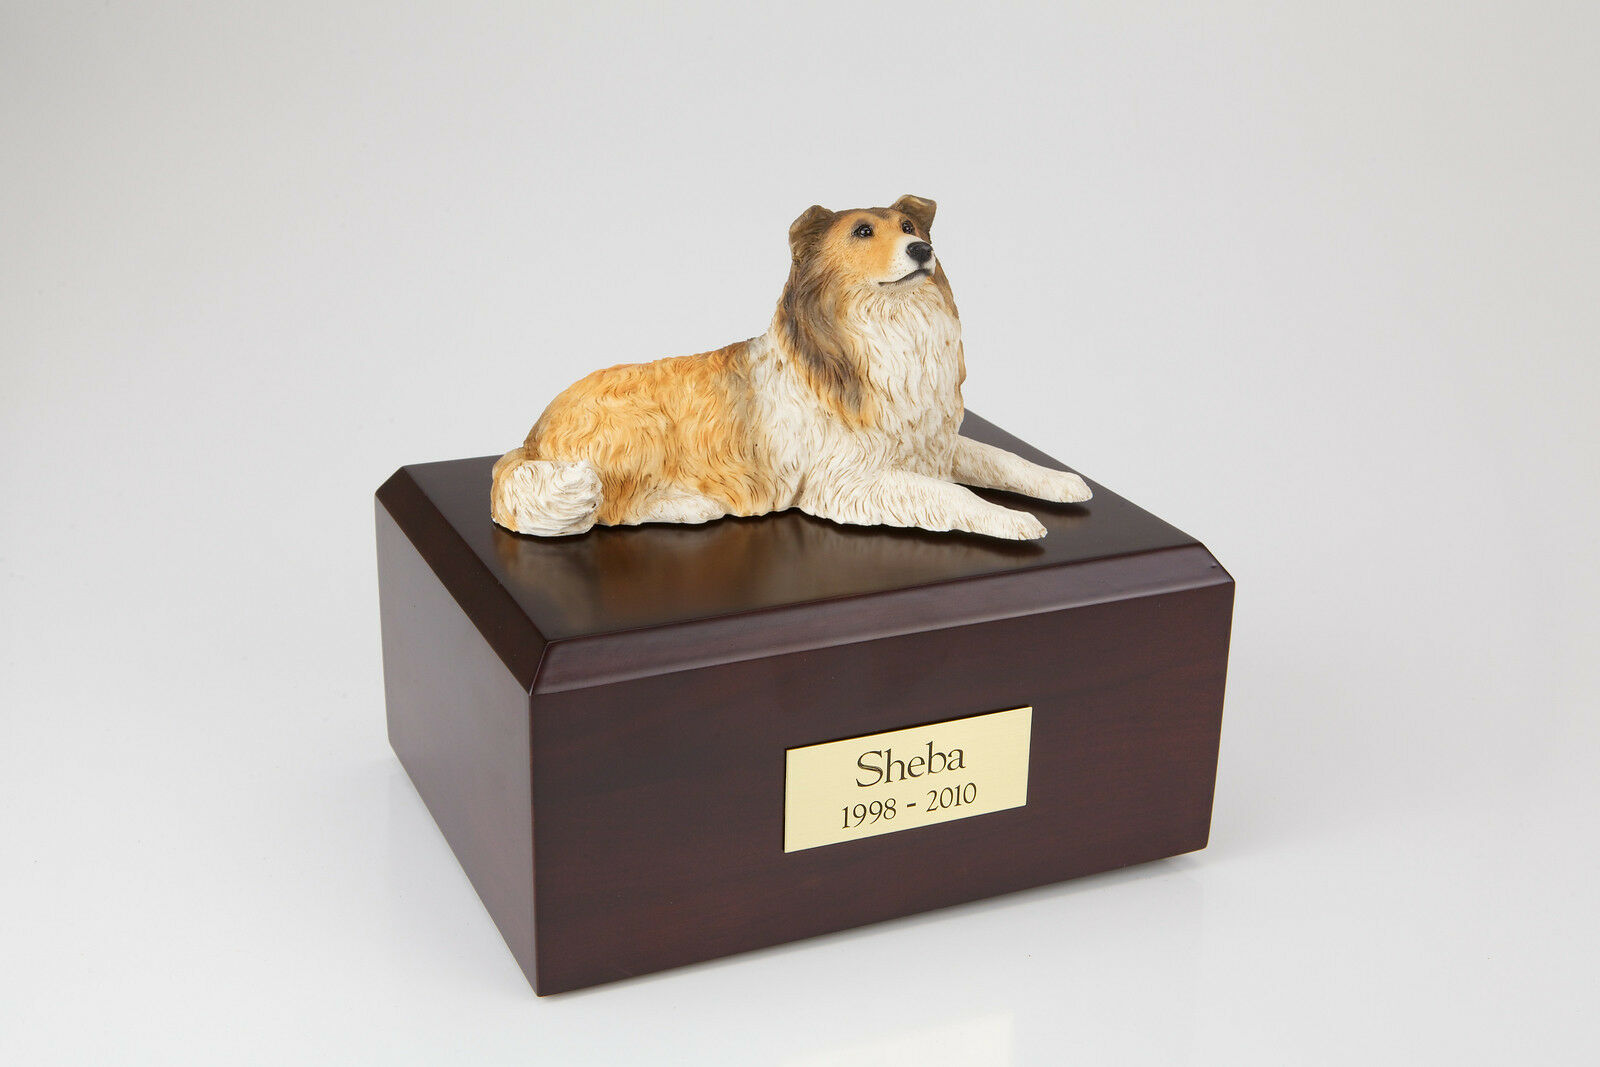 Collie Pet Funeral Cremation Urn Available in 3 Different Colors & 4 Sizes